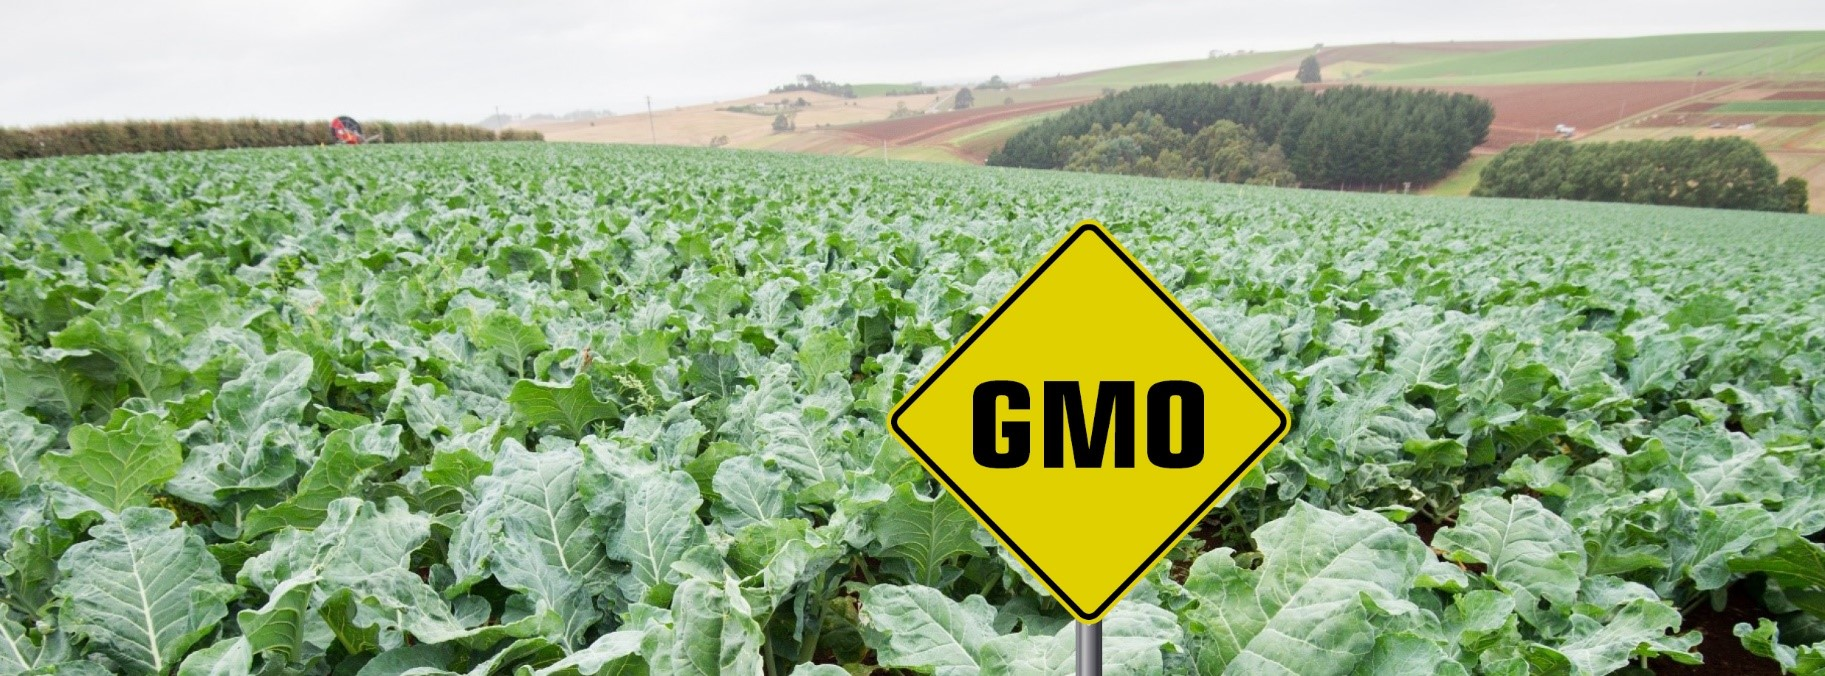 Kano Farmers Call For Ban on GMO Crops